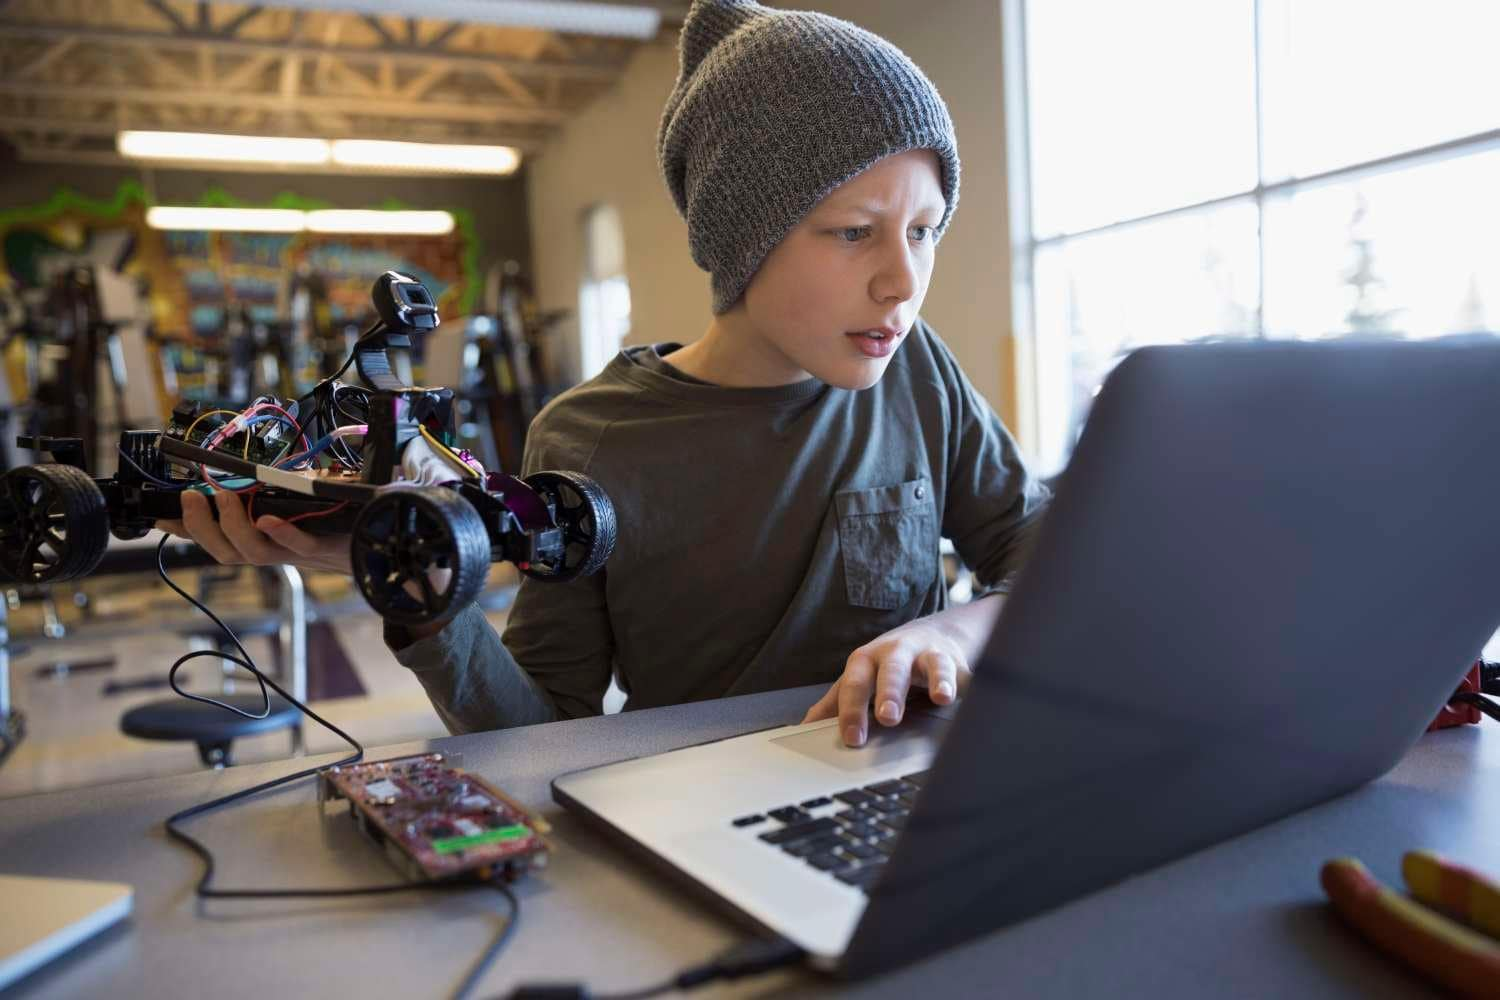 Young male student using laptop to program a remote control car